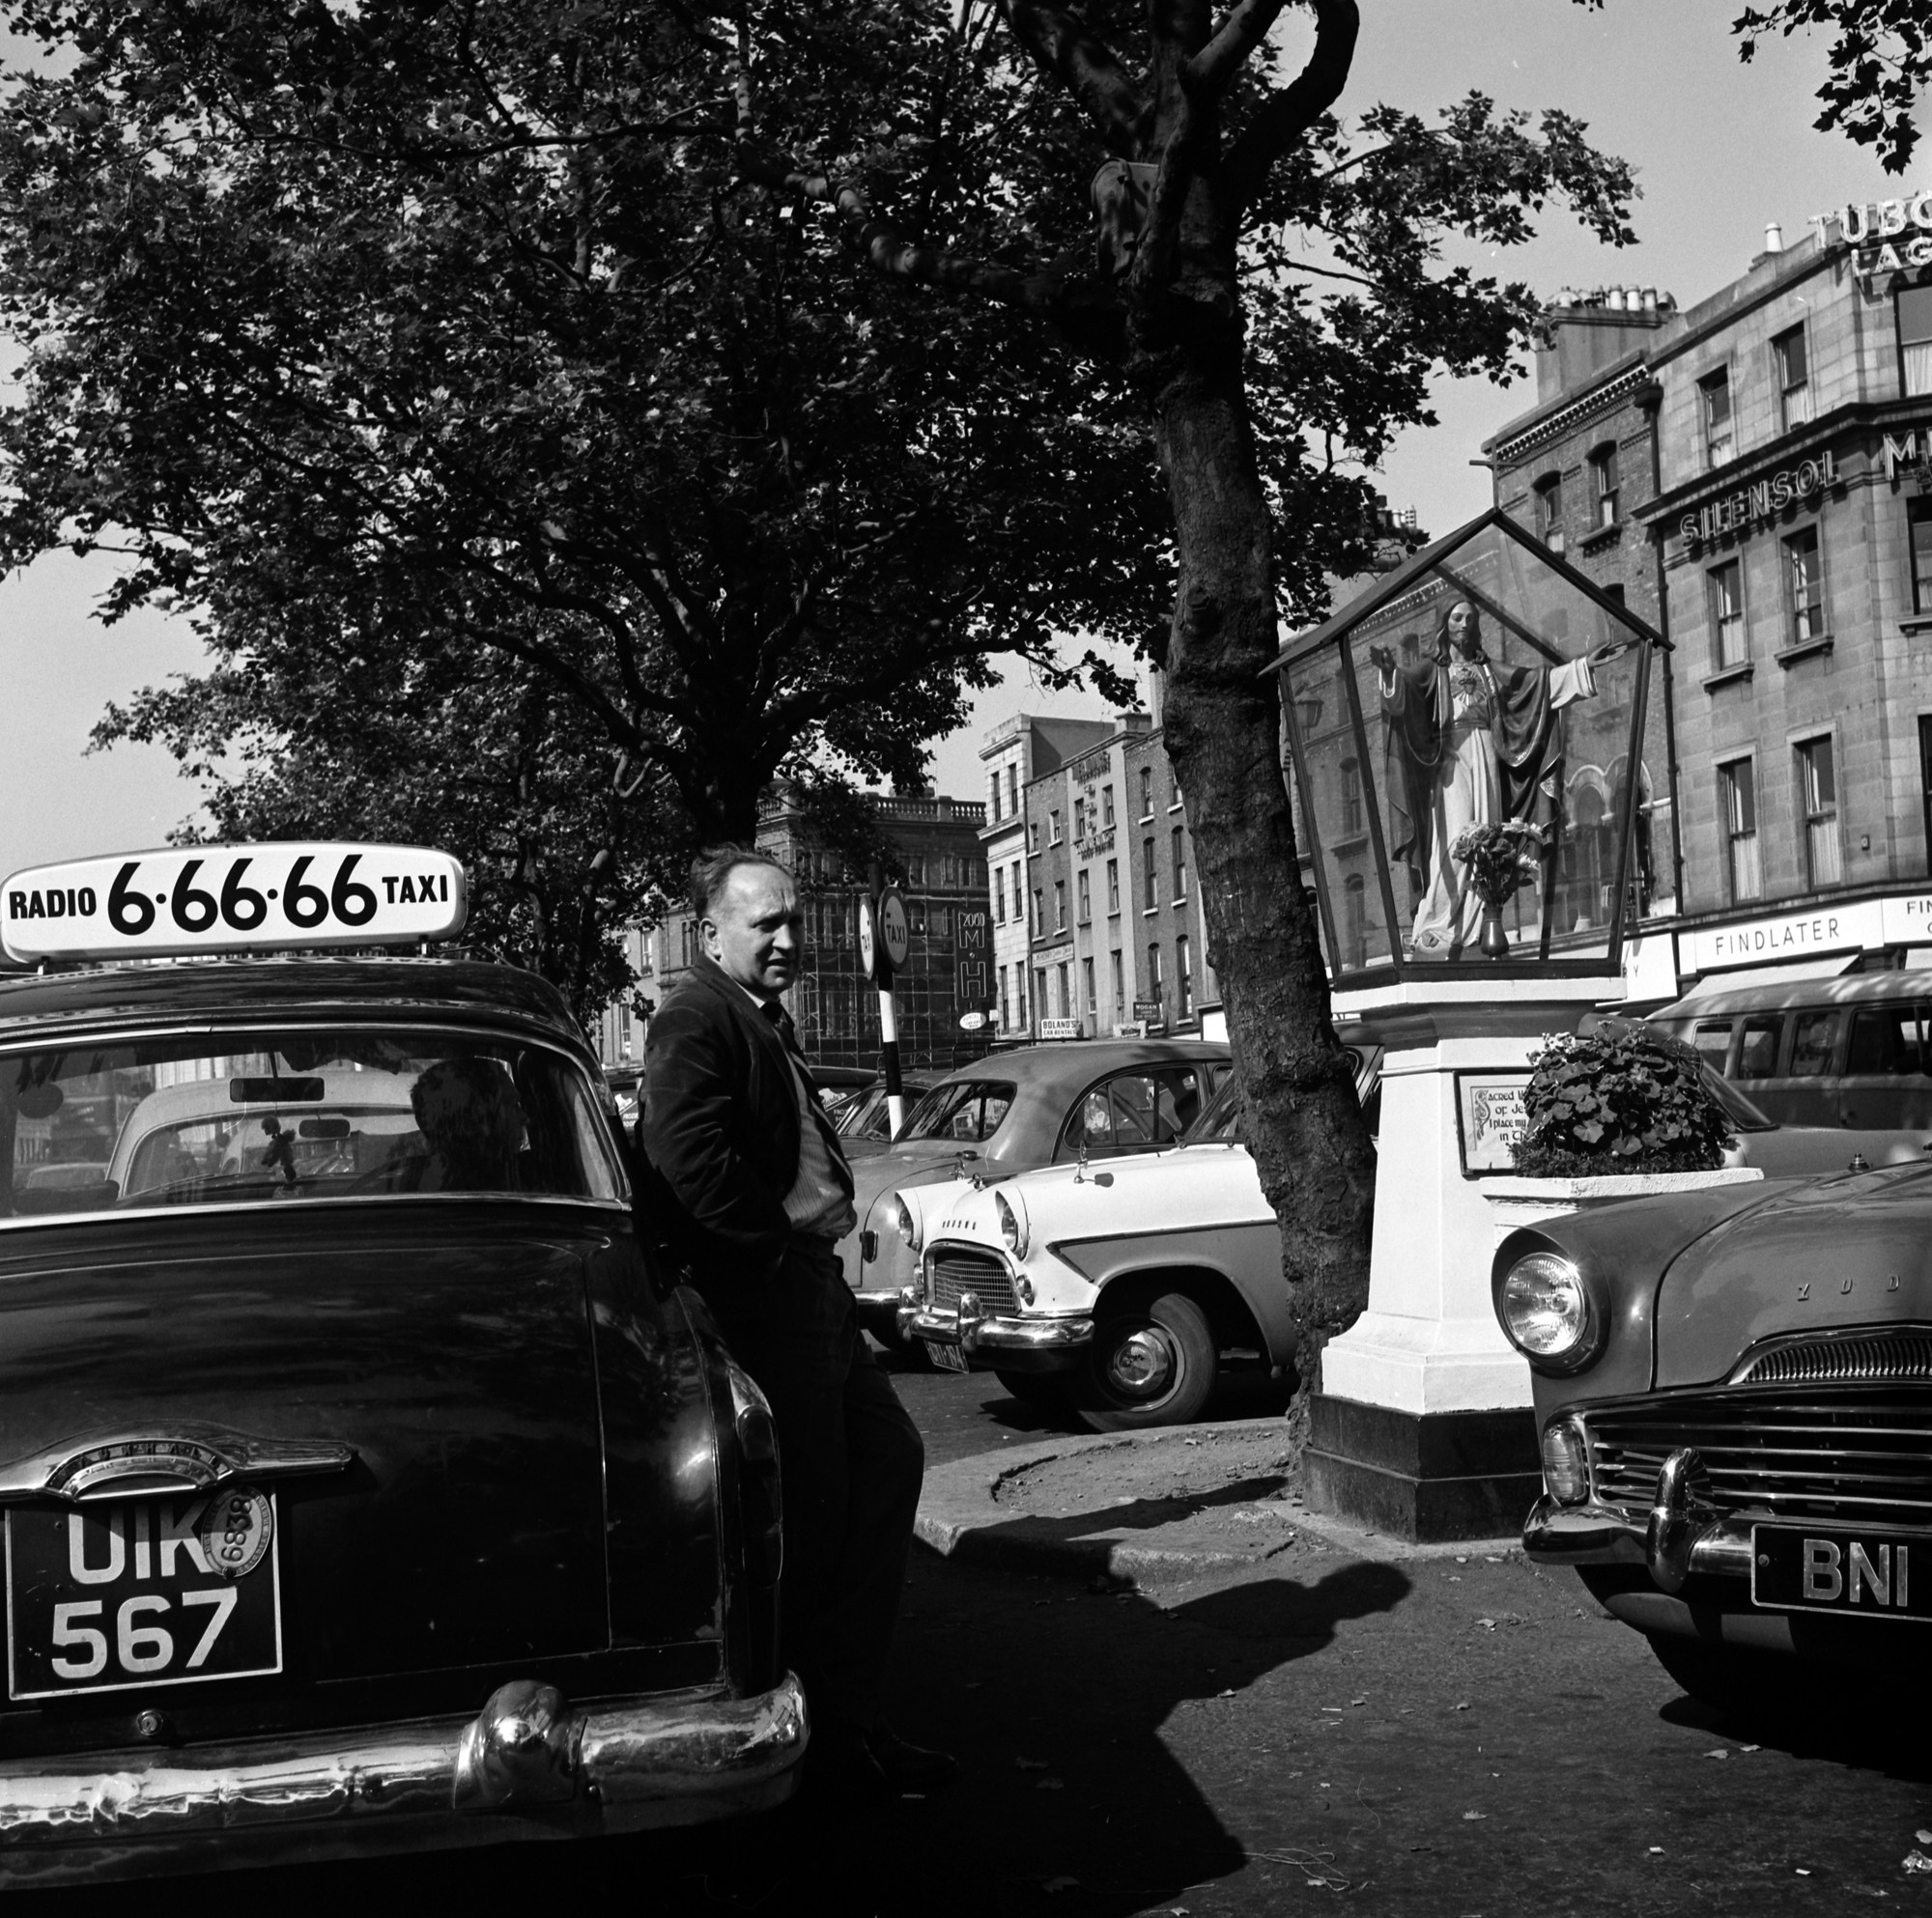 Ireland 1960s, Taxi driver waiting for a fare (and chatting to another driver leaning on his car?) at the rank in Dublin's O'Connell Street beside the Sacred Heart Shrine. Photographer: Elinor Wiltshire Date: Summer 1964